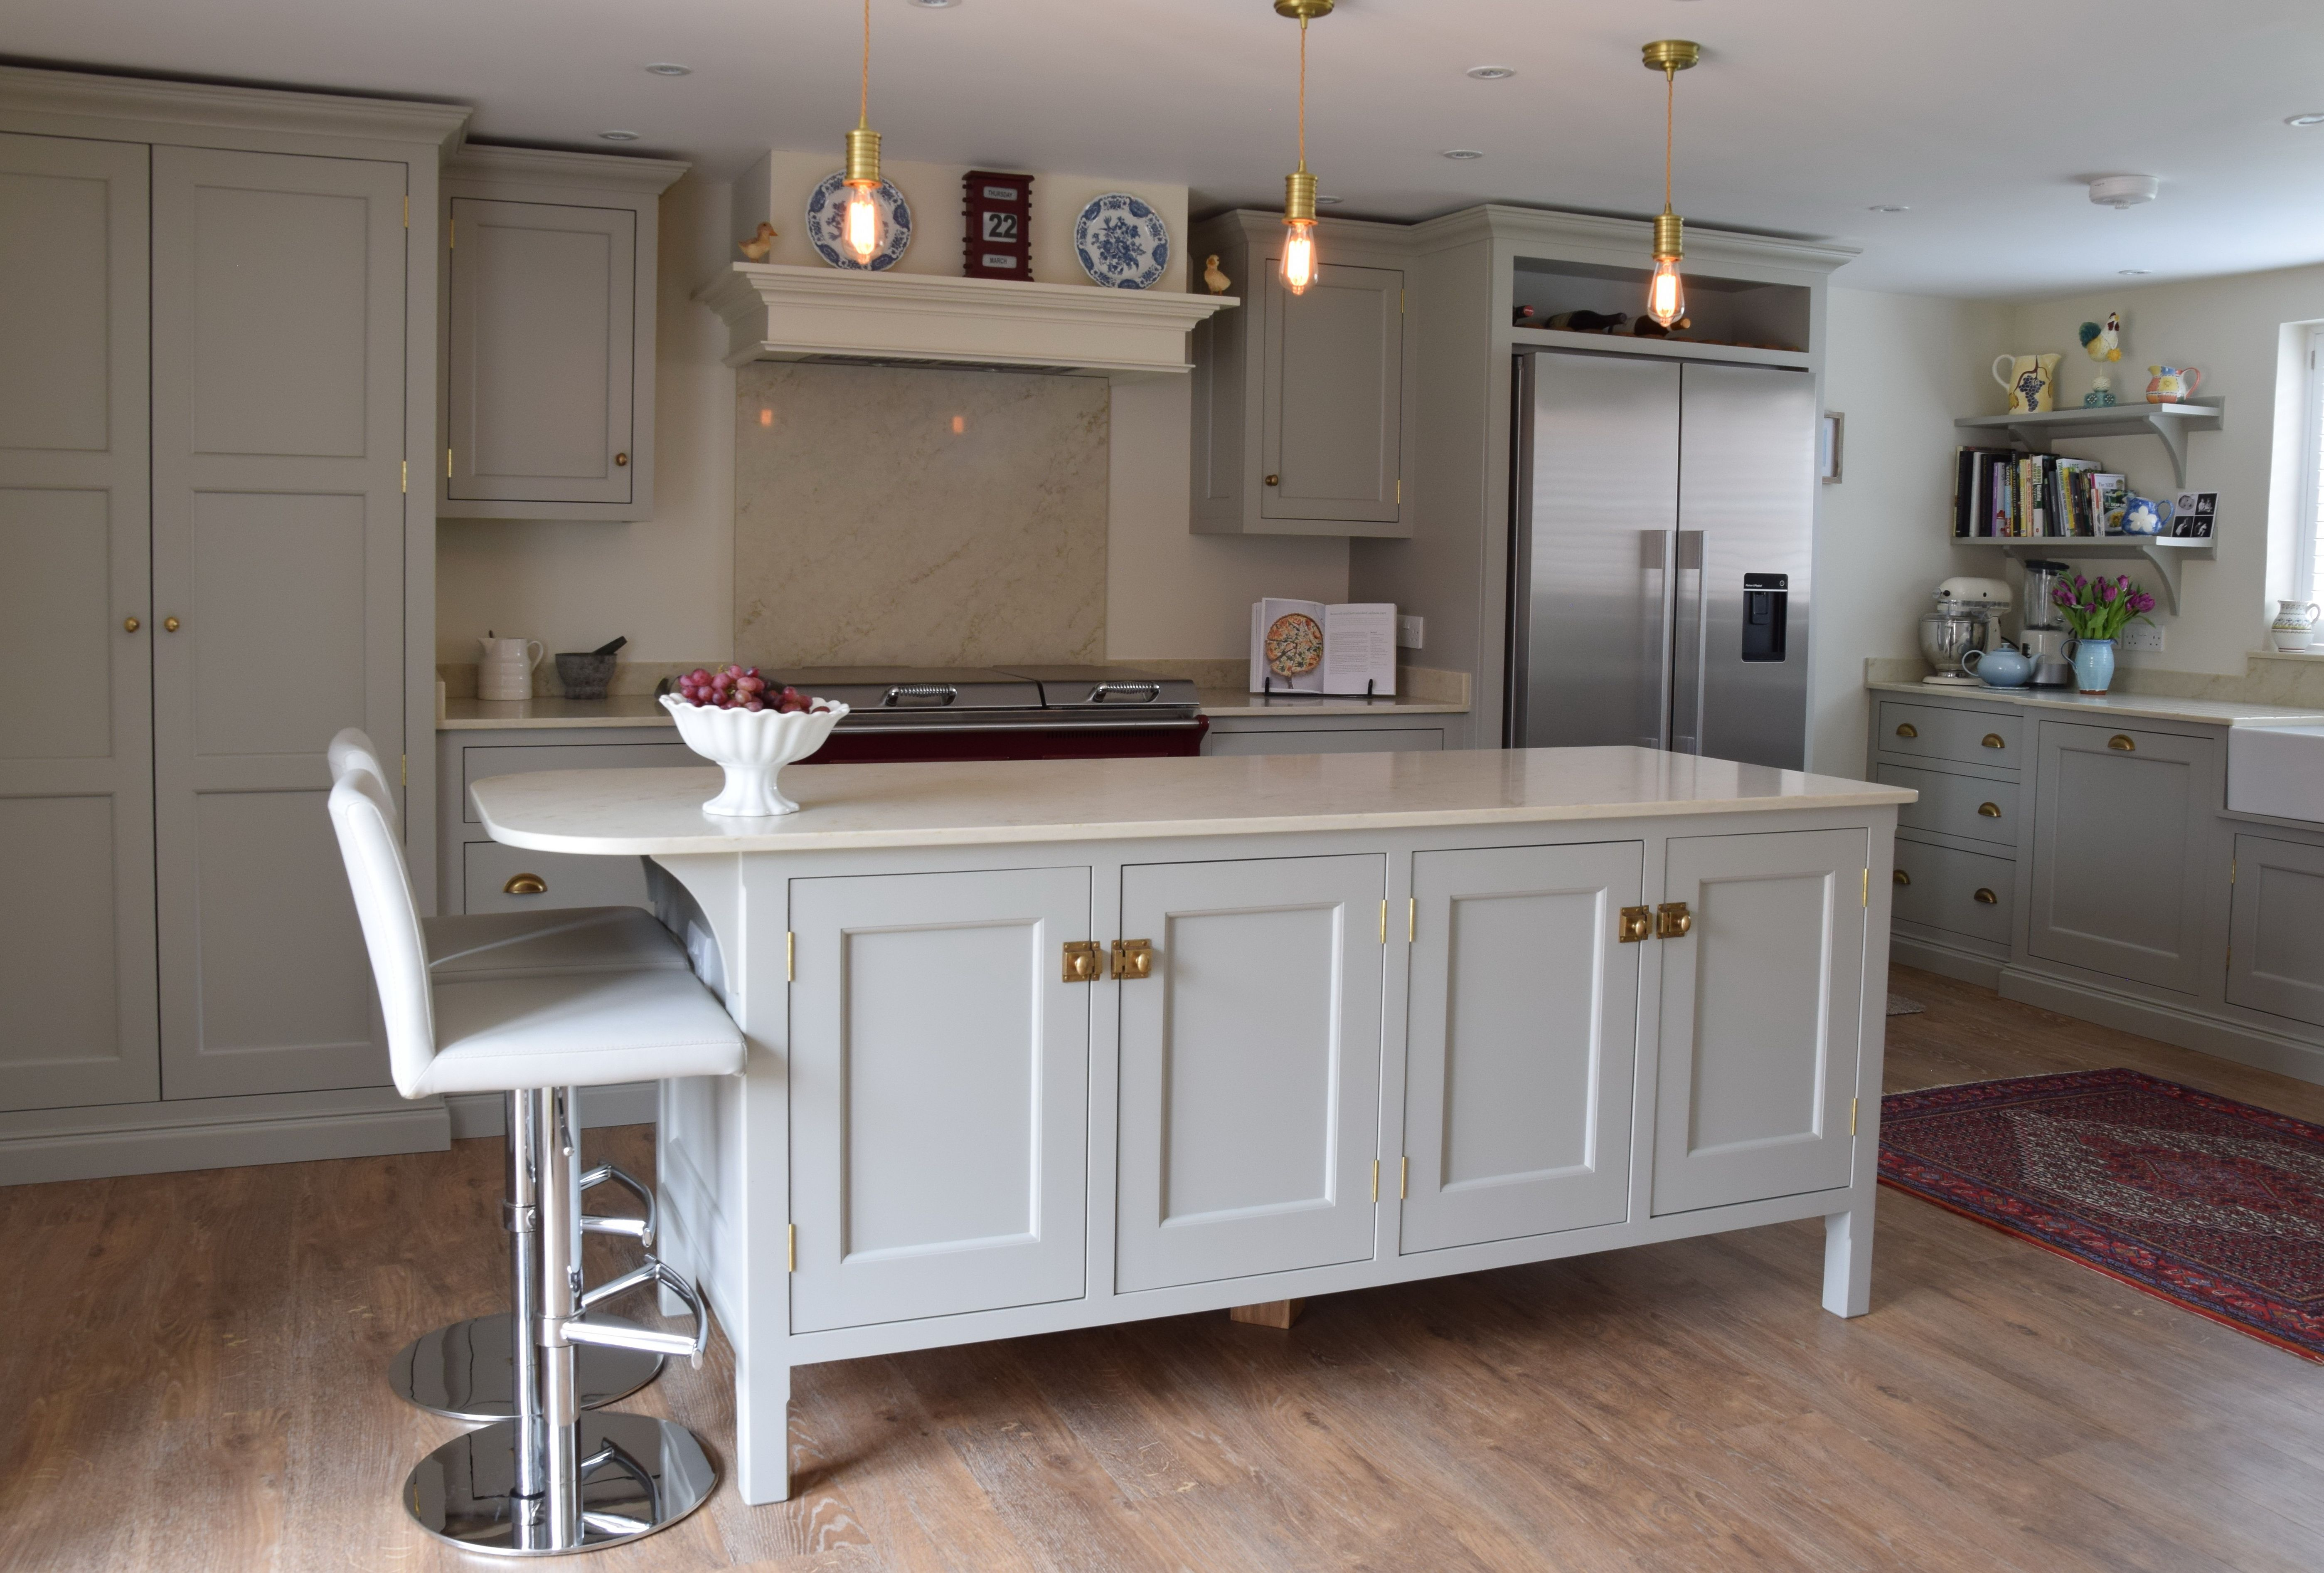 Guild Anderson Old Rectory Style Kitchen Cabinetry Is Painted In Farrow And Ball Hardwick Whit Kitchen Cabinet Design Kitchen Design Kitchen Cabinets Pictures